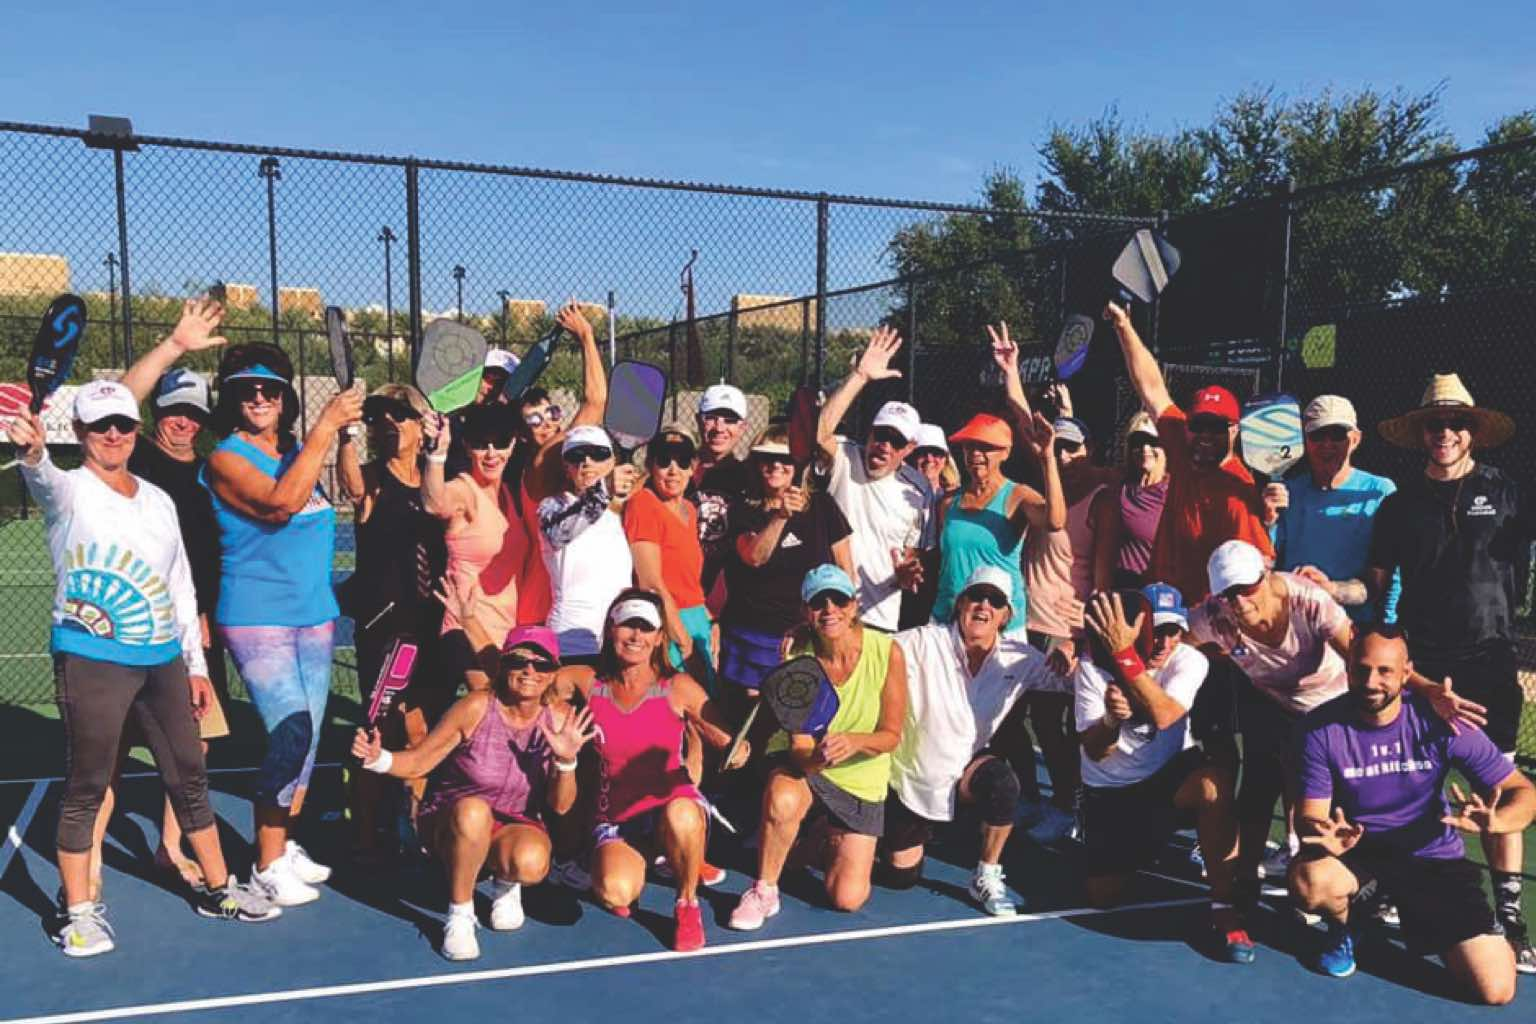 A league of players in a pickleball game at Life Time